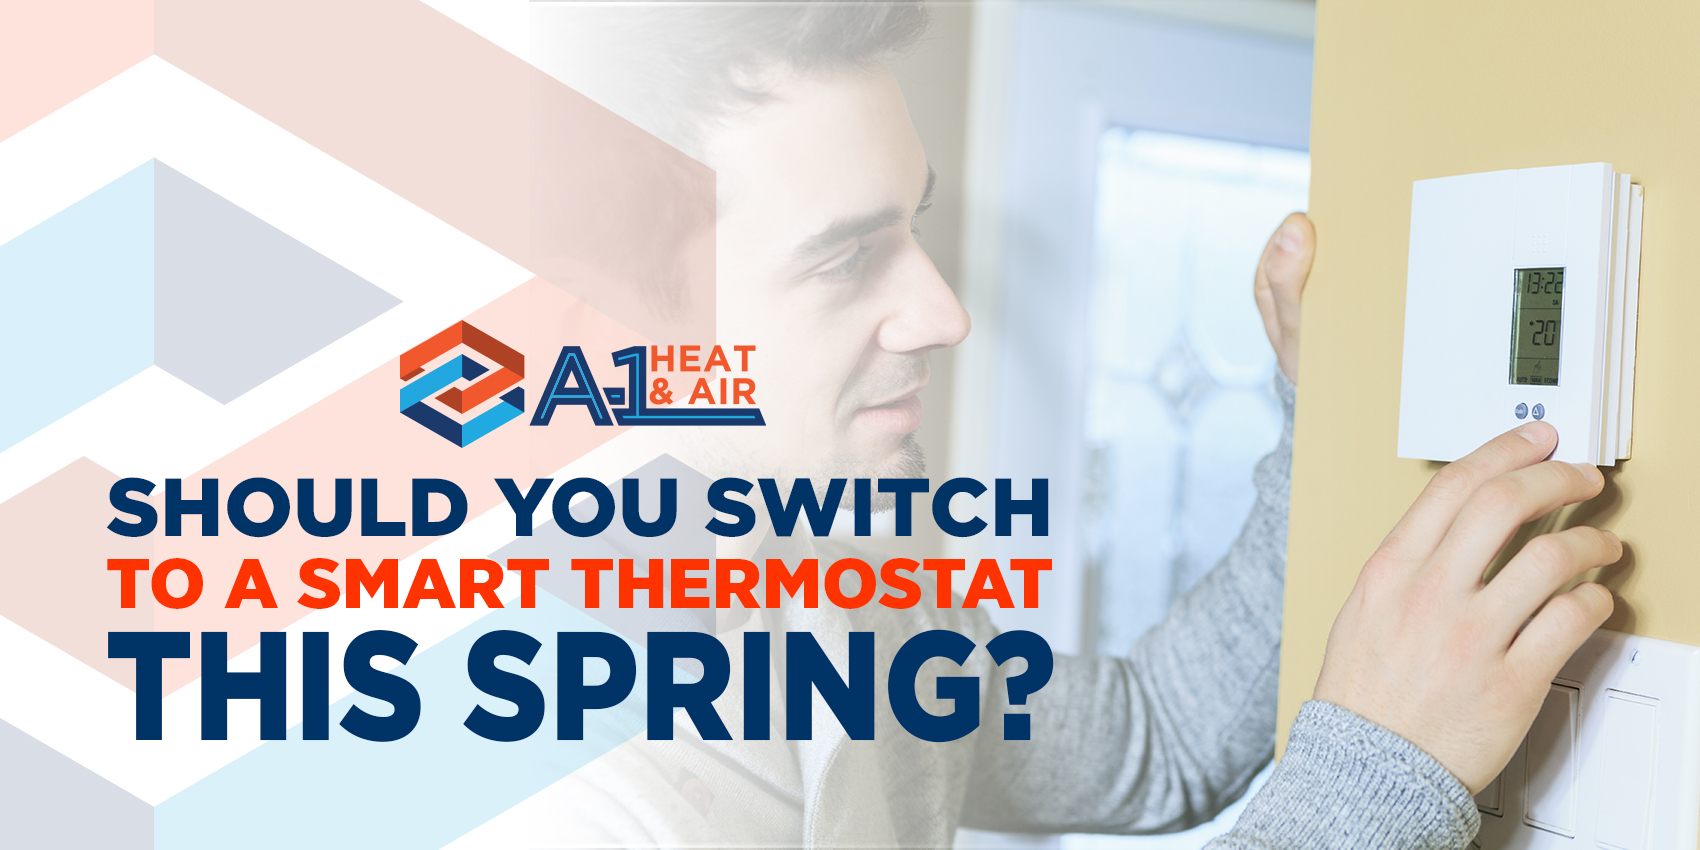 Should You Switch to a Smart Thermostat This Spring?